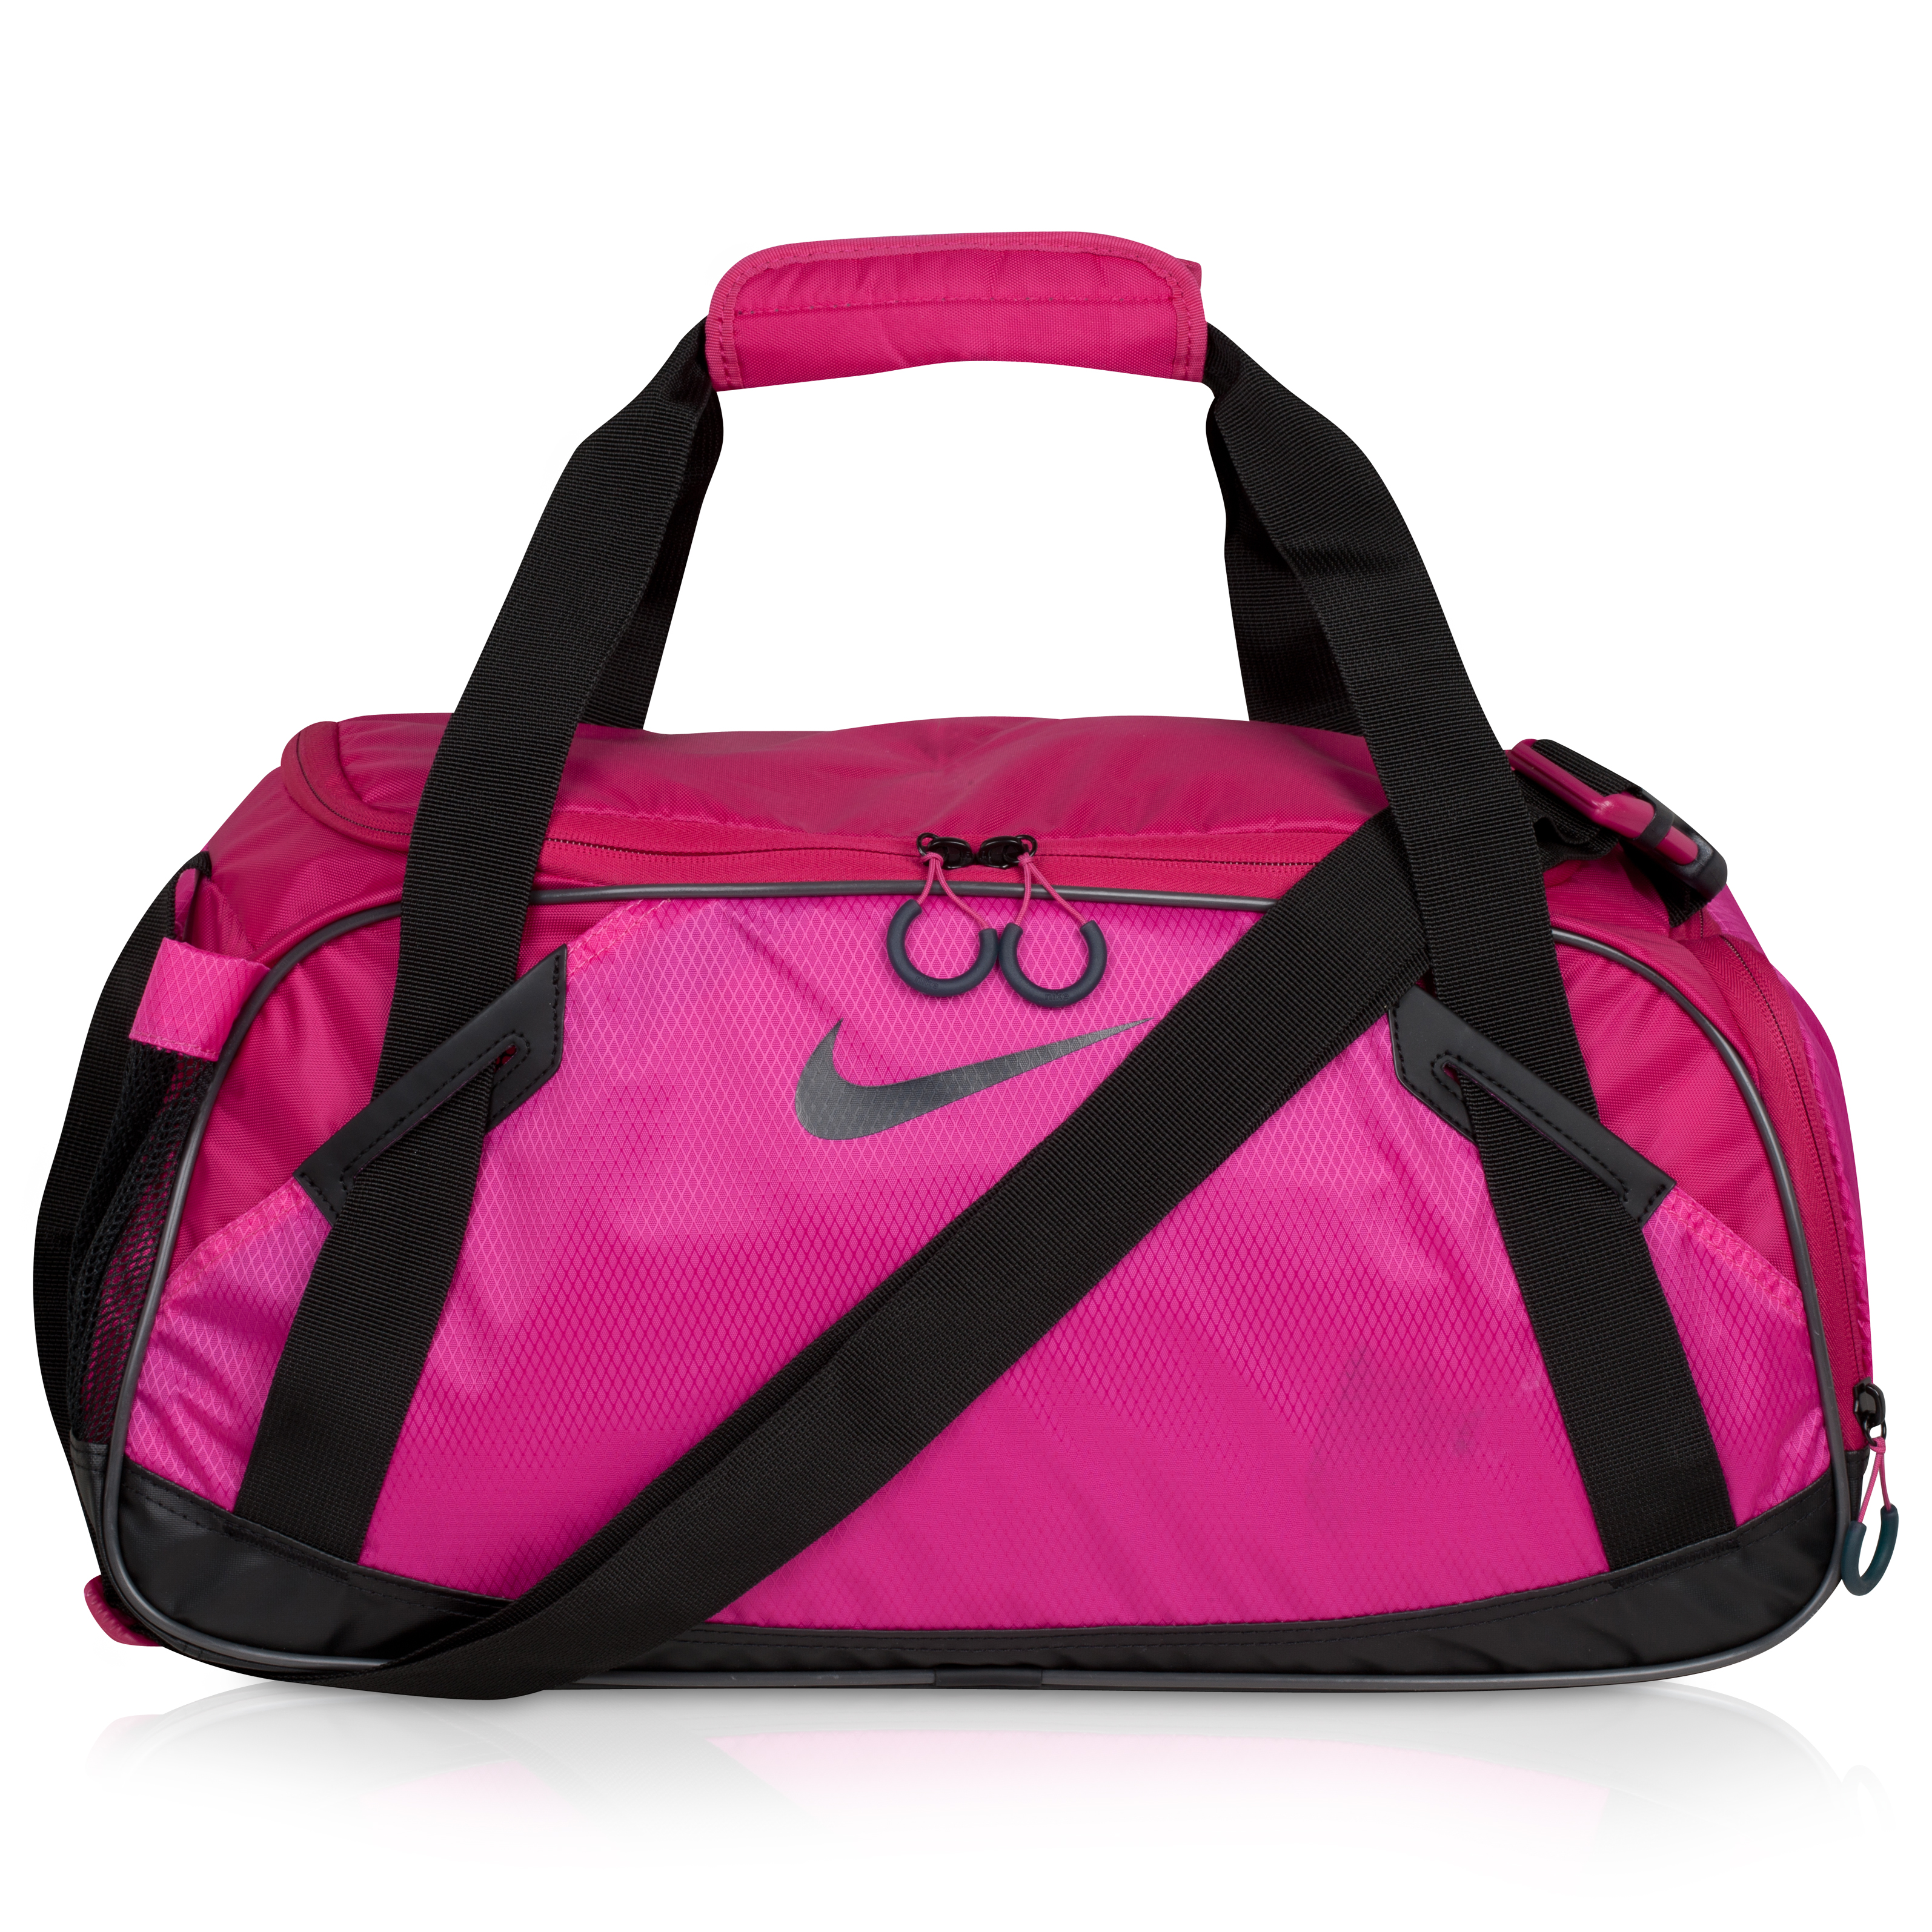 Nike Varsity Girl Medium Duffel - Womens	Sprt Fuch/Fusion Pnk/(Anthra)